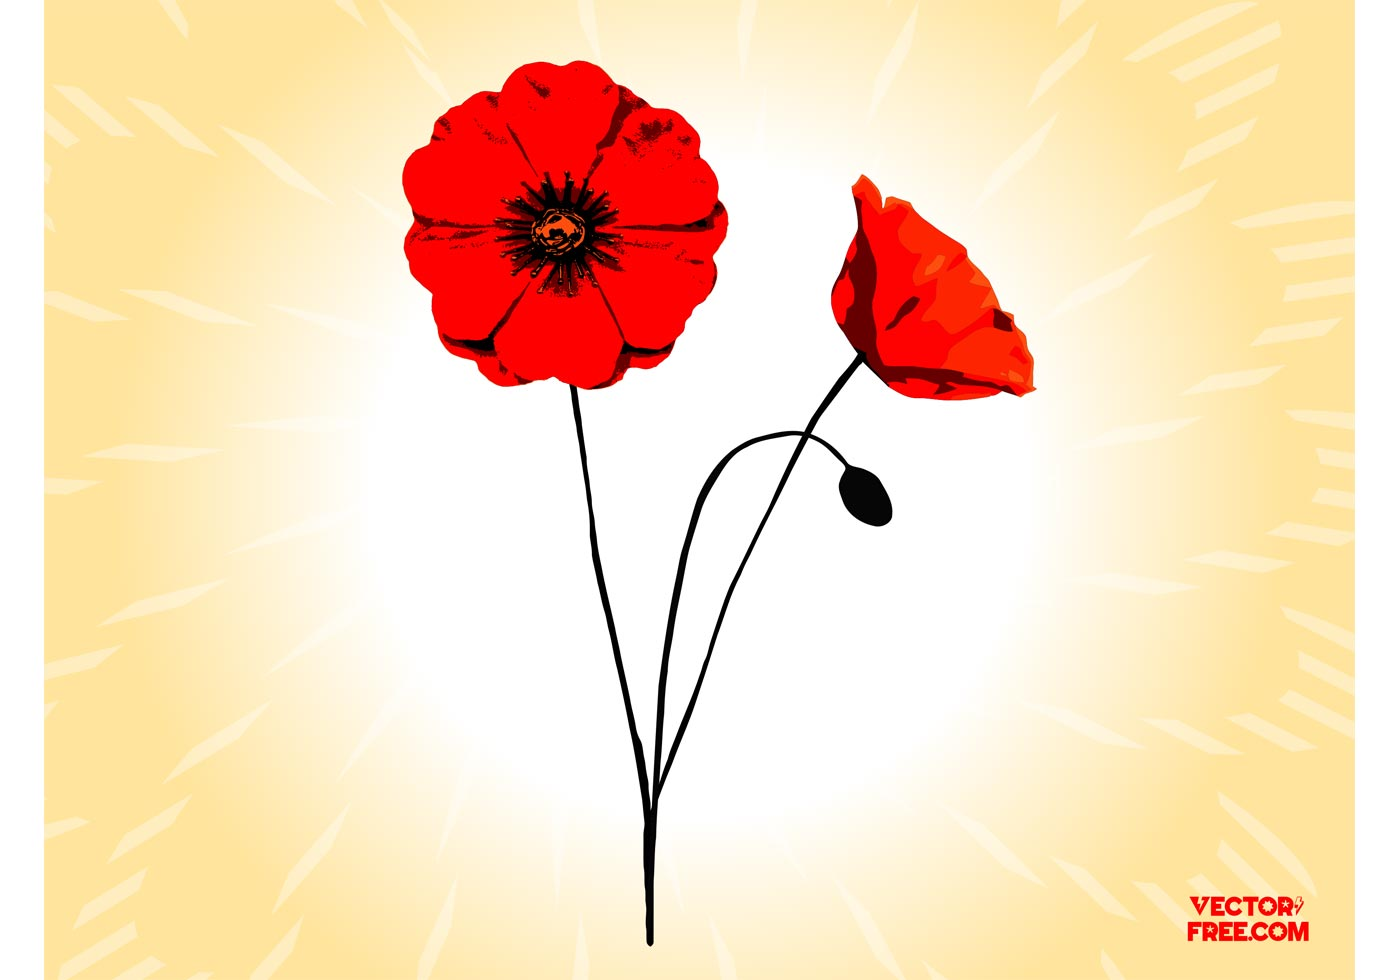 Poppy Flower Free Vector Art 11008 Free Downloads